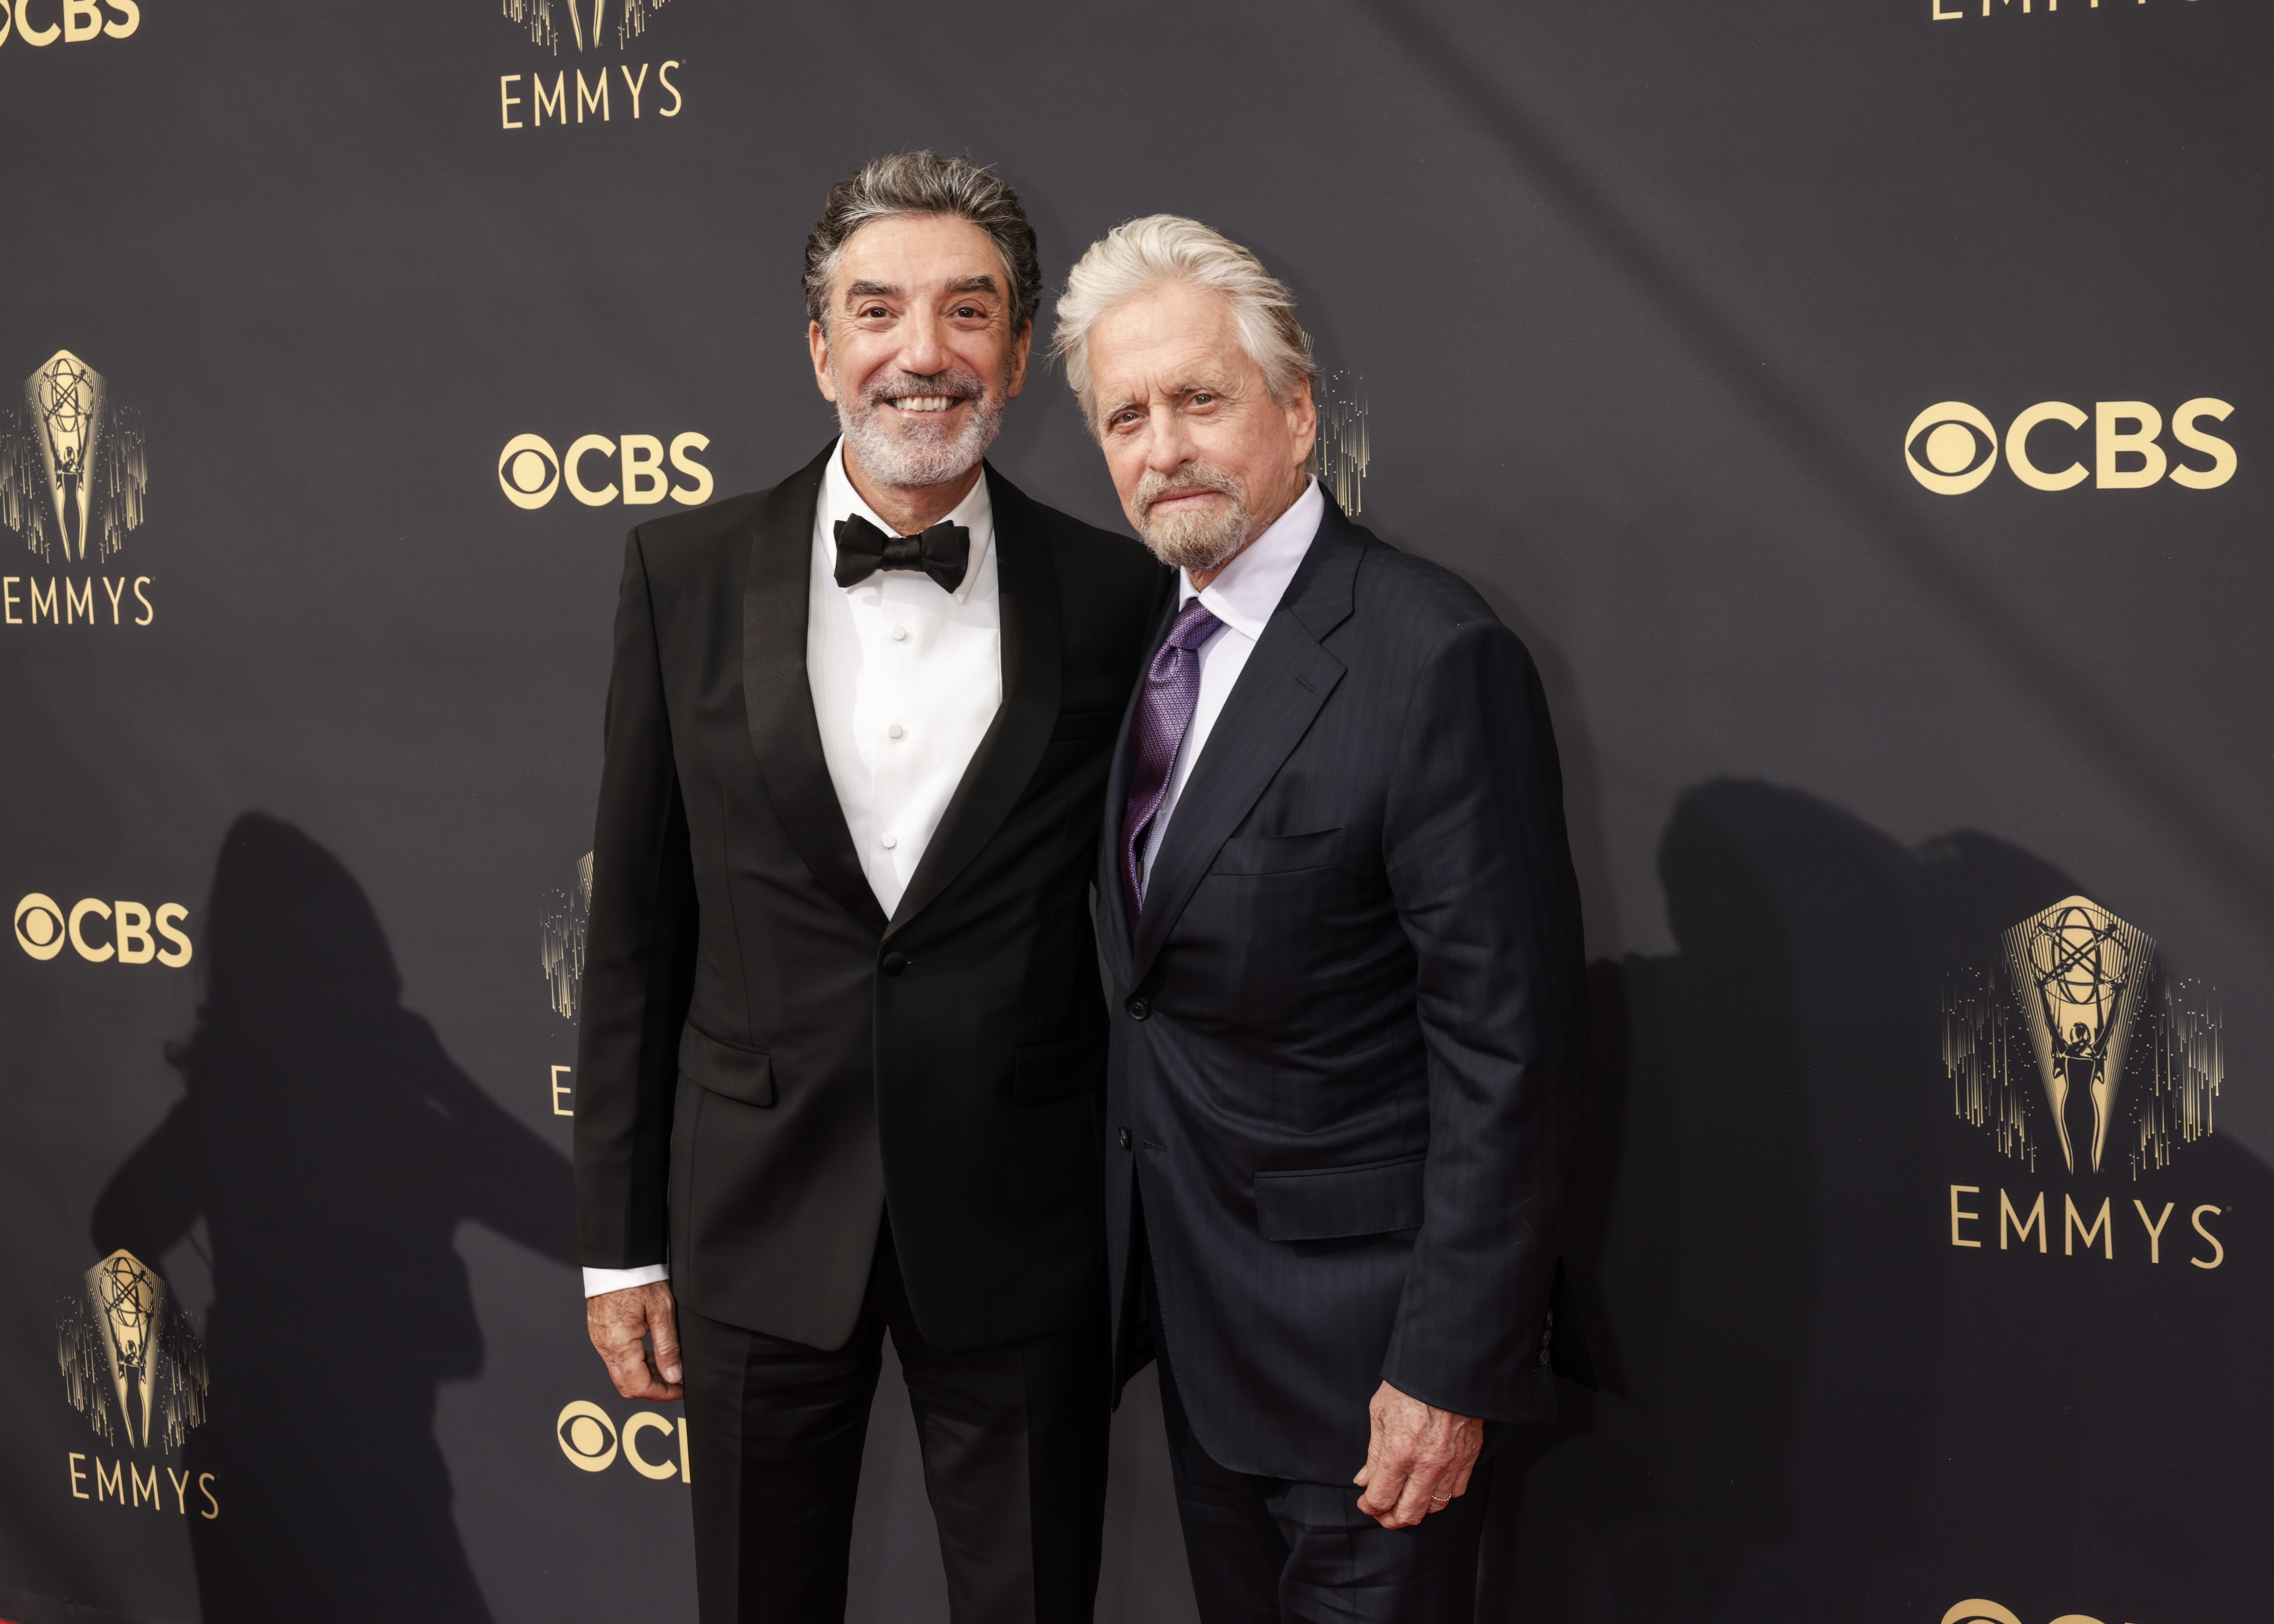 LOS ANGELES - SEPTEMBER 19: Chuck Lorre and Michael Douglas attends the 73RD EMMY AWARDS on Sunday, Sept. 19 (8:00-11:00 PM, live ET/5:00-8:00 PM, live PT) on the CBS Television Network and available to stream live and on demand on Paramount+. (Photo by Francis Specker/CBS via Getty Images)